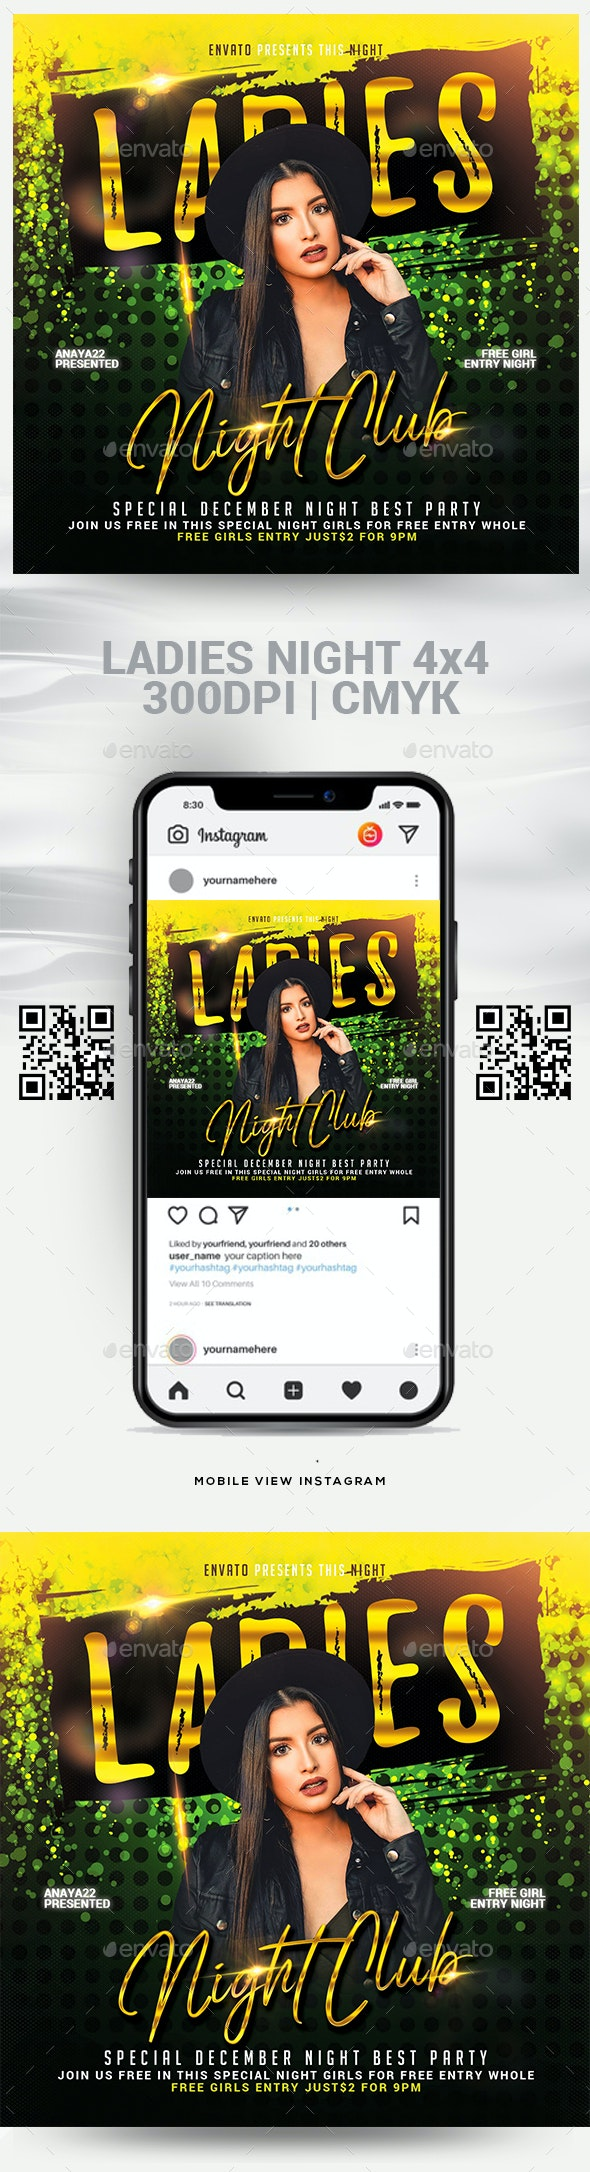 Ladies Club Night Flyer Template - Clubs & Parties Events